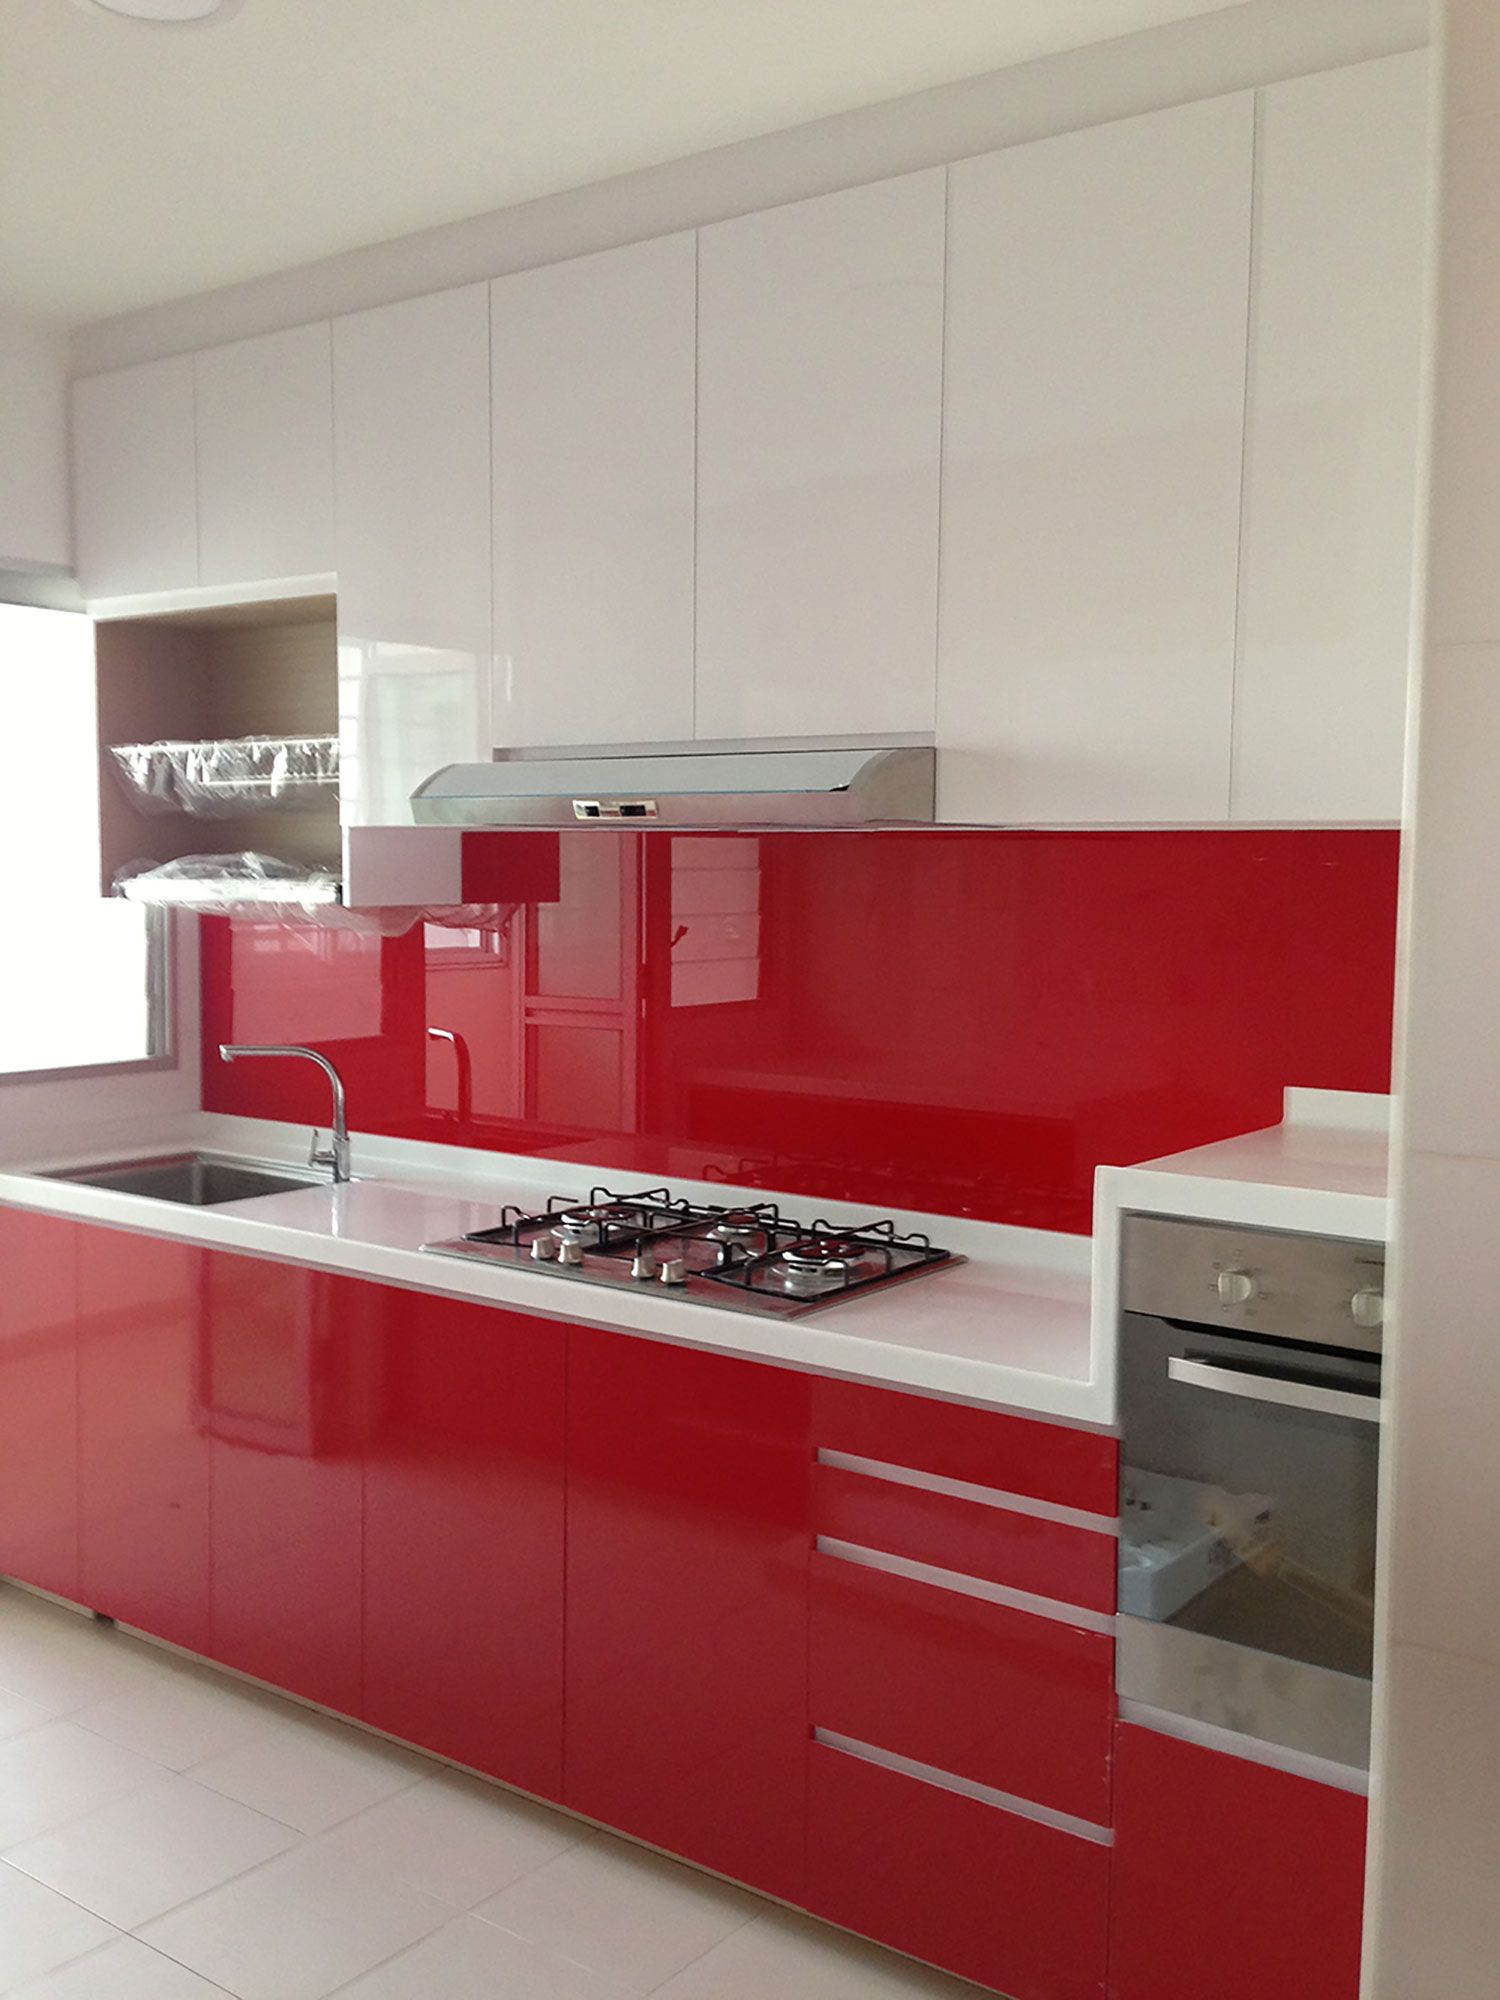 Kitchen On Discount I 39 M Thinking That Adding One Colour To The Kitchen Might Be Fun Home